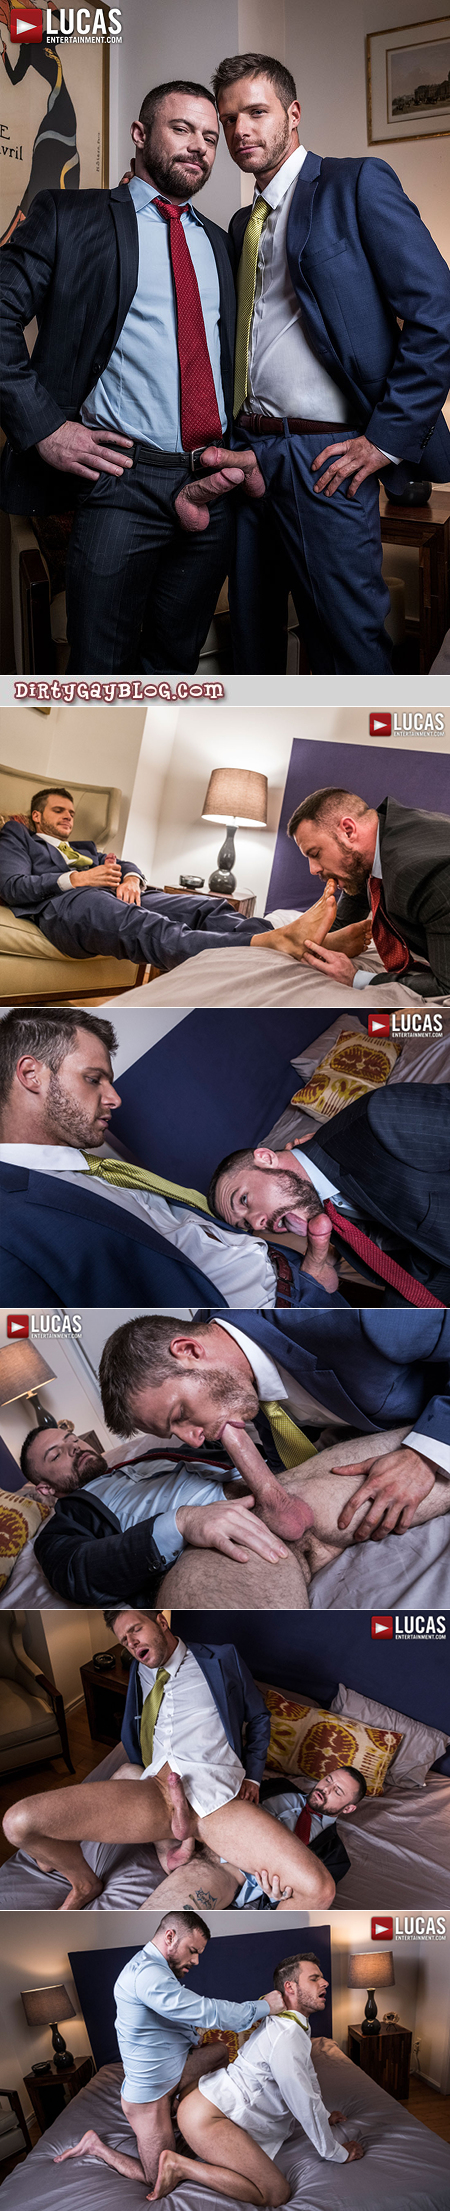 Muscular business having sweaty gay sex in a hotel room.